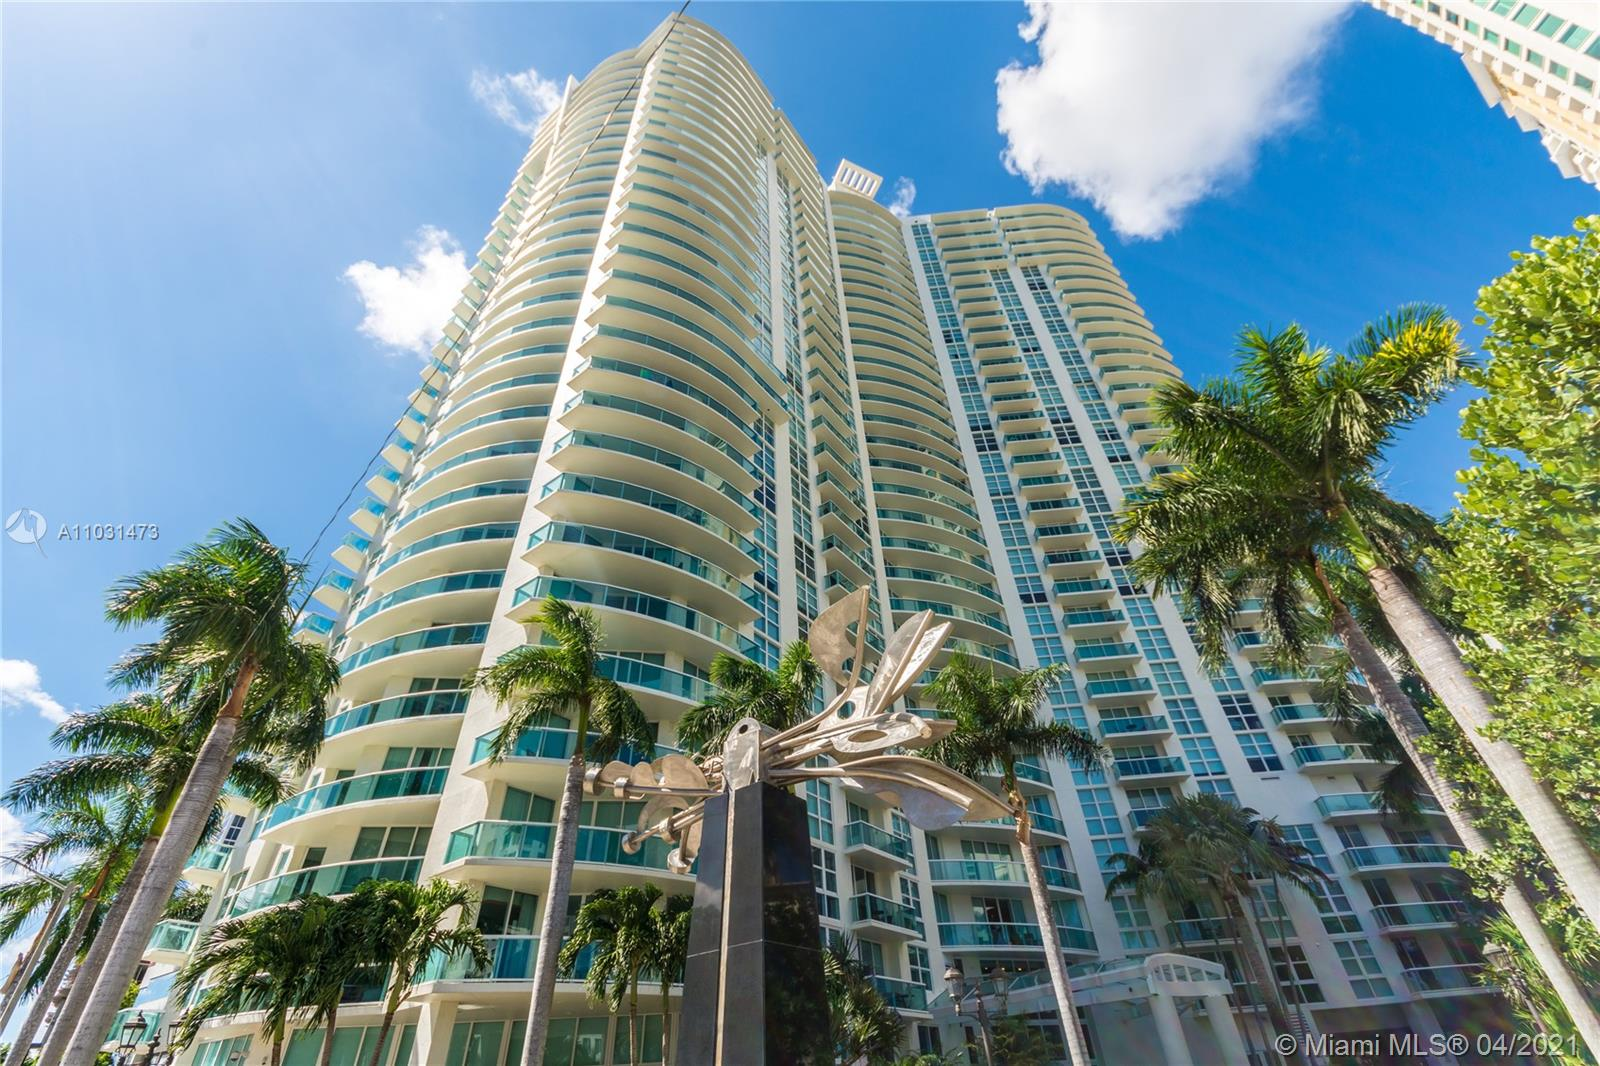 Enjoy everything the vibrant Fort Lauderdale lifestyle has to offer! Watergarden is located steps from Las Olas, the New River and just over 2 miles to the beach. Leisurely stroll or trolley to fine dining, cultural & art events, shopping, and much more. Fabulous river, city, and ocean views from this spacious 3 bedroom, 2 bath in sought-after 09 line featuring floor to ceiling impact windows, gourmet kitchen and, balcony access off the kitchen, living area and master bedroom. Well managed, pet friendly boutique building features resort-style amenities including: concierge, 24 hour valet & security, theater room, business center, clubroom, library, pool, BBQ area, 2 level fitness center, sauna, and more!